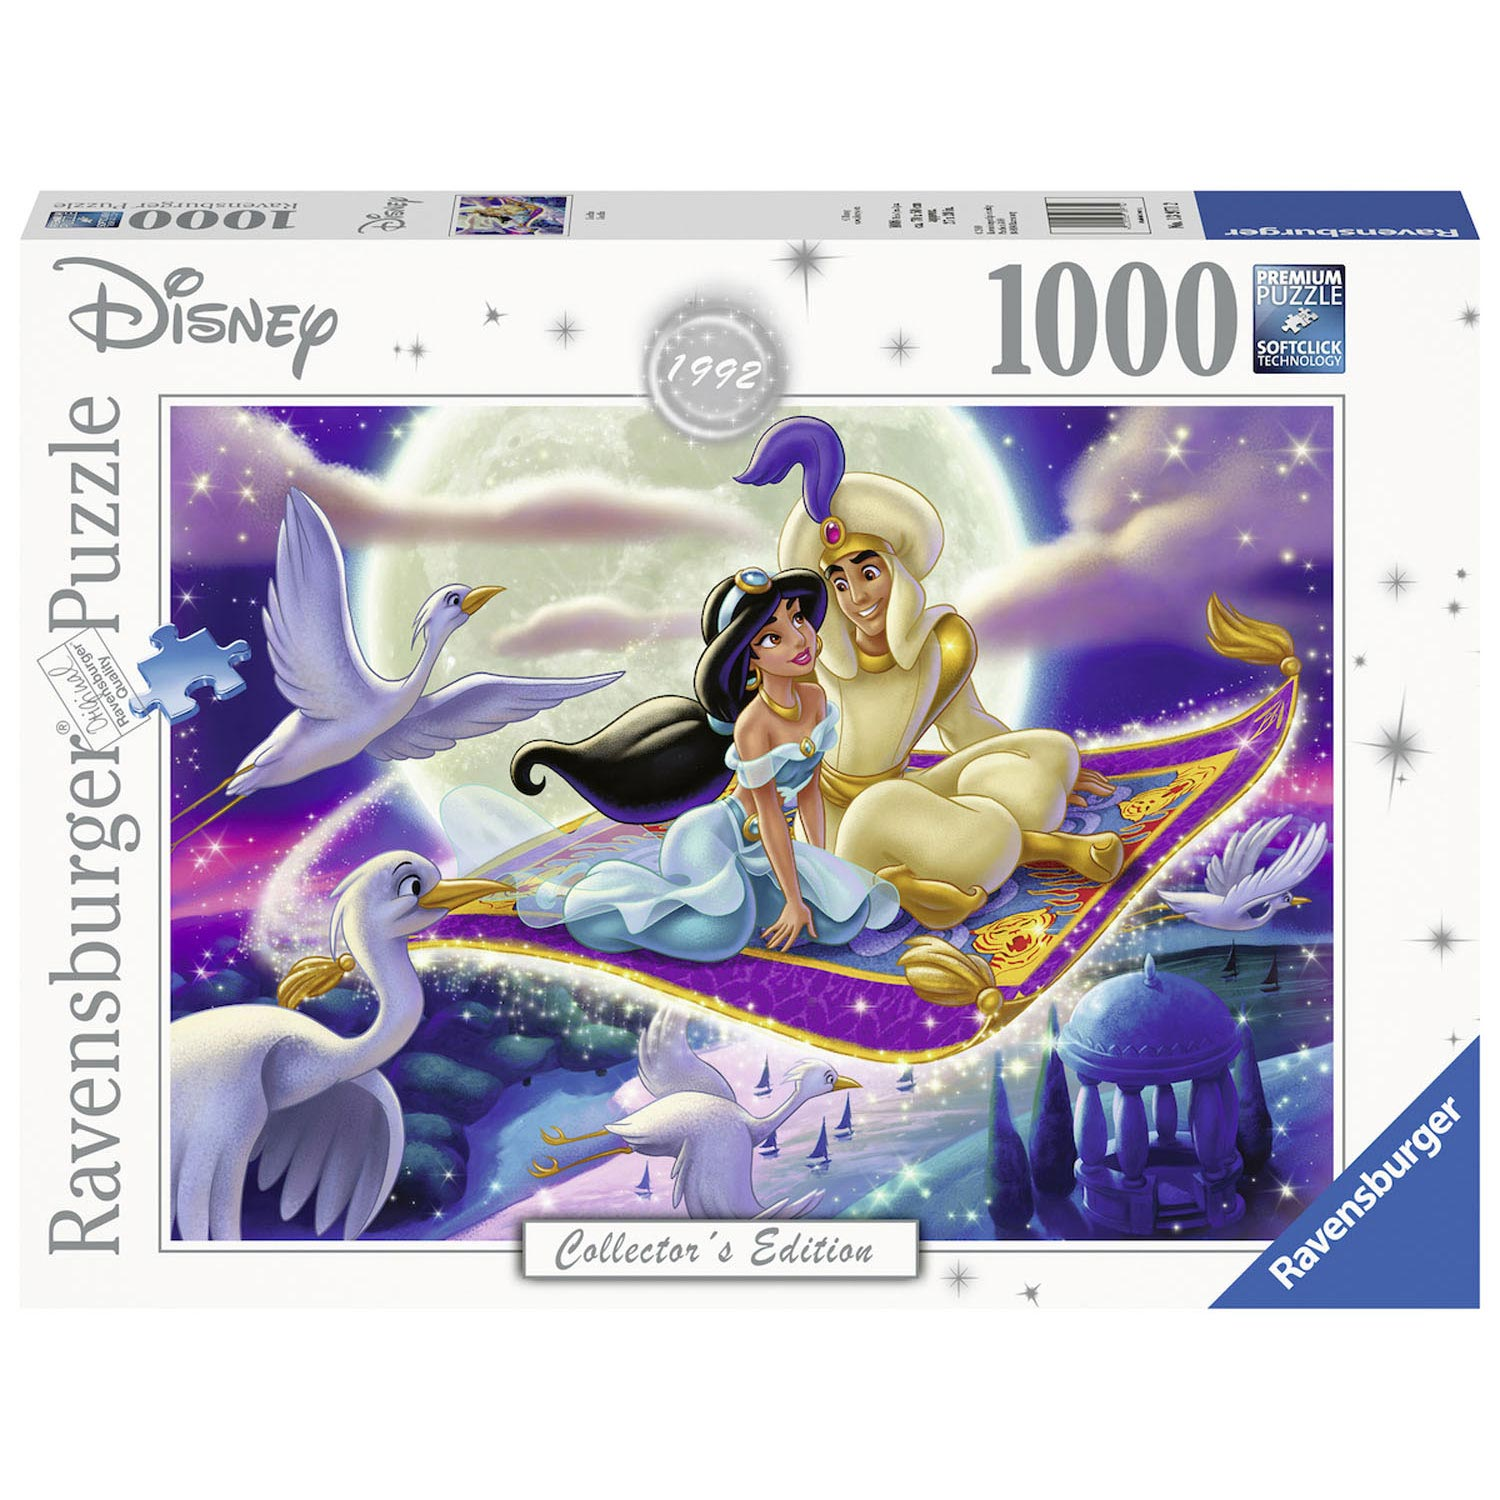 Disney Collector's Edition Aladdin, 1000st.